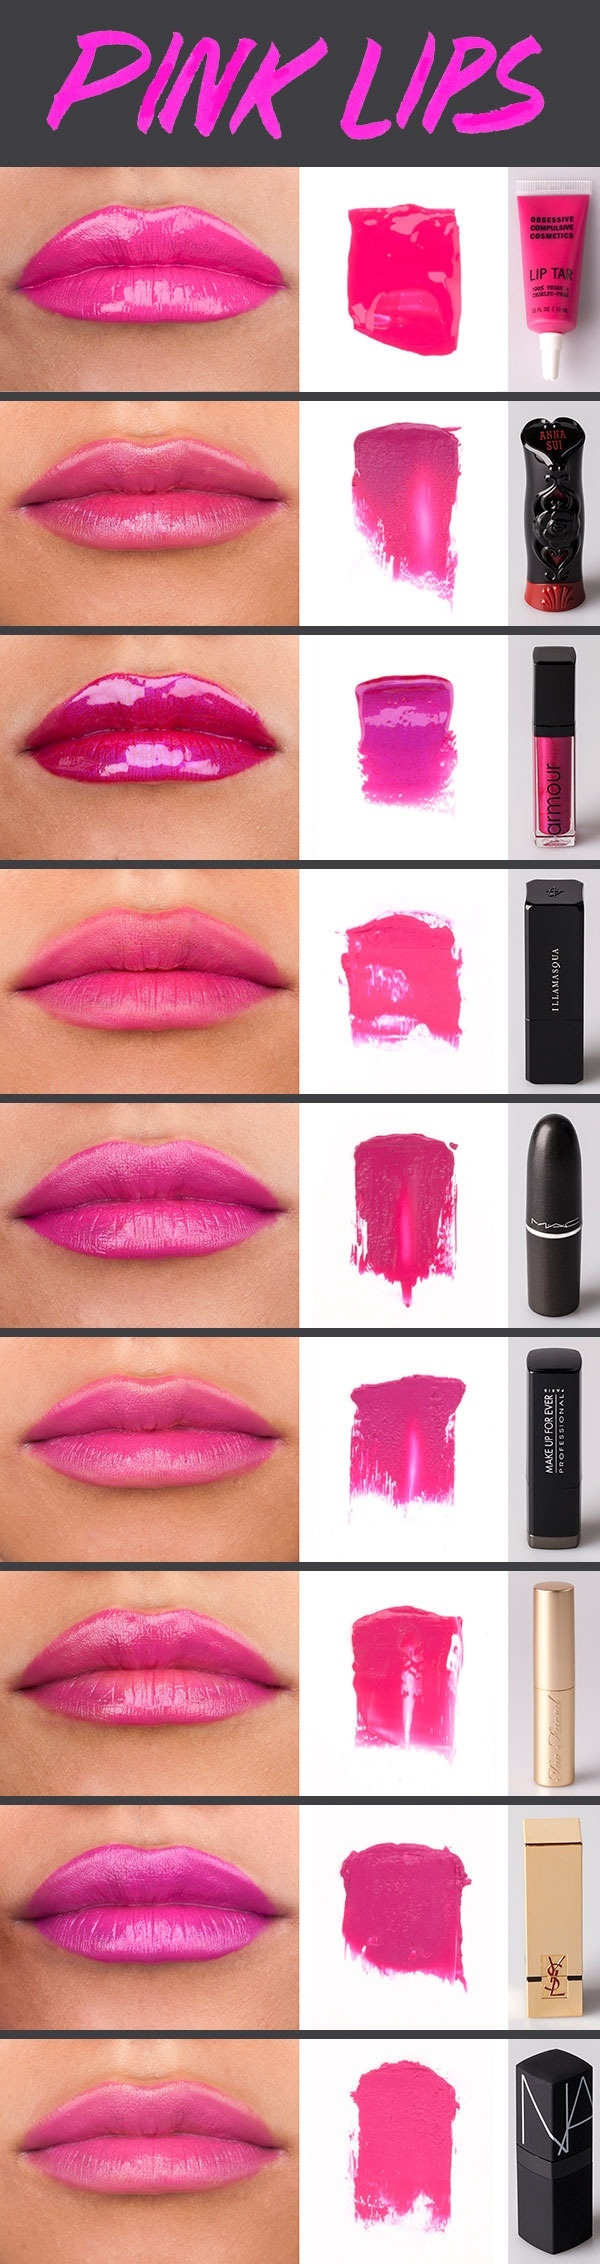 16 Best Images About Make Up On Pinterest Purple